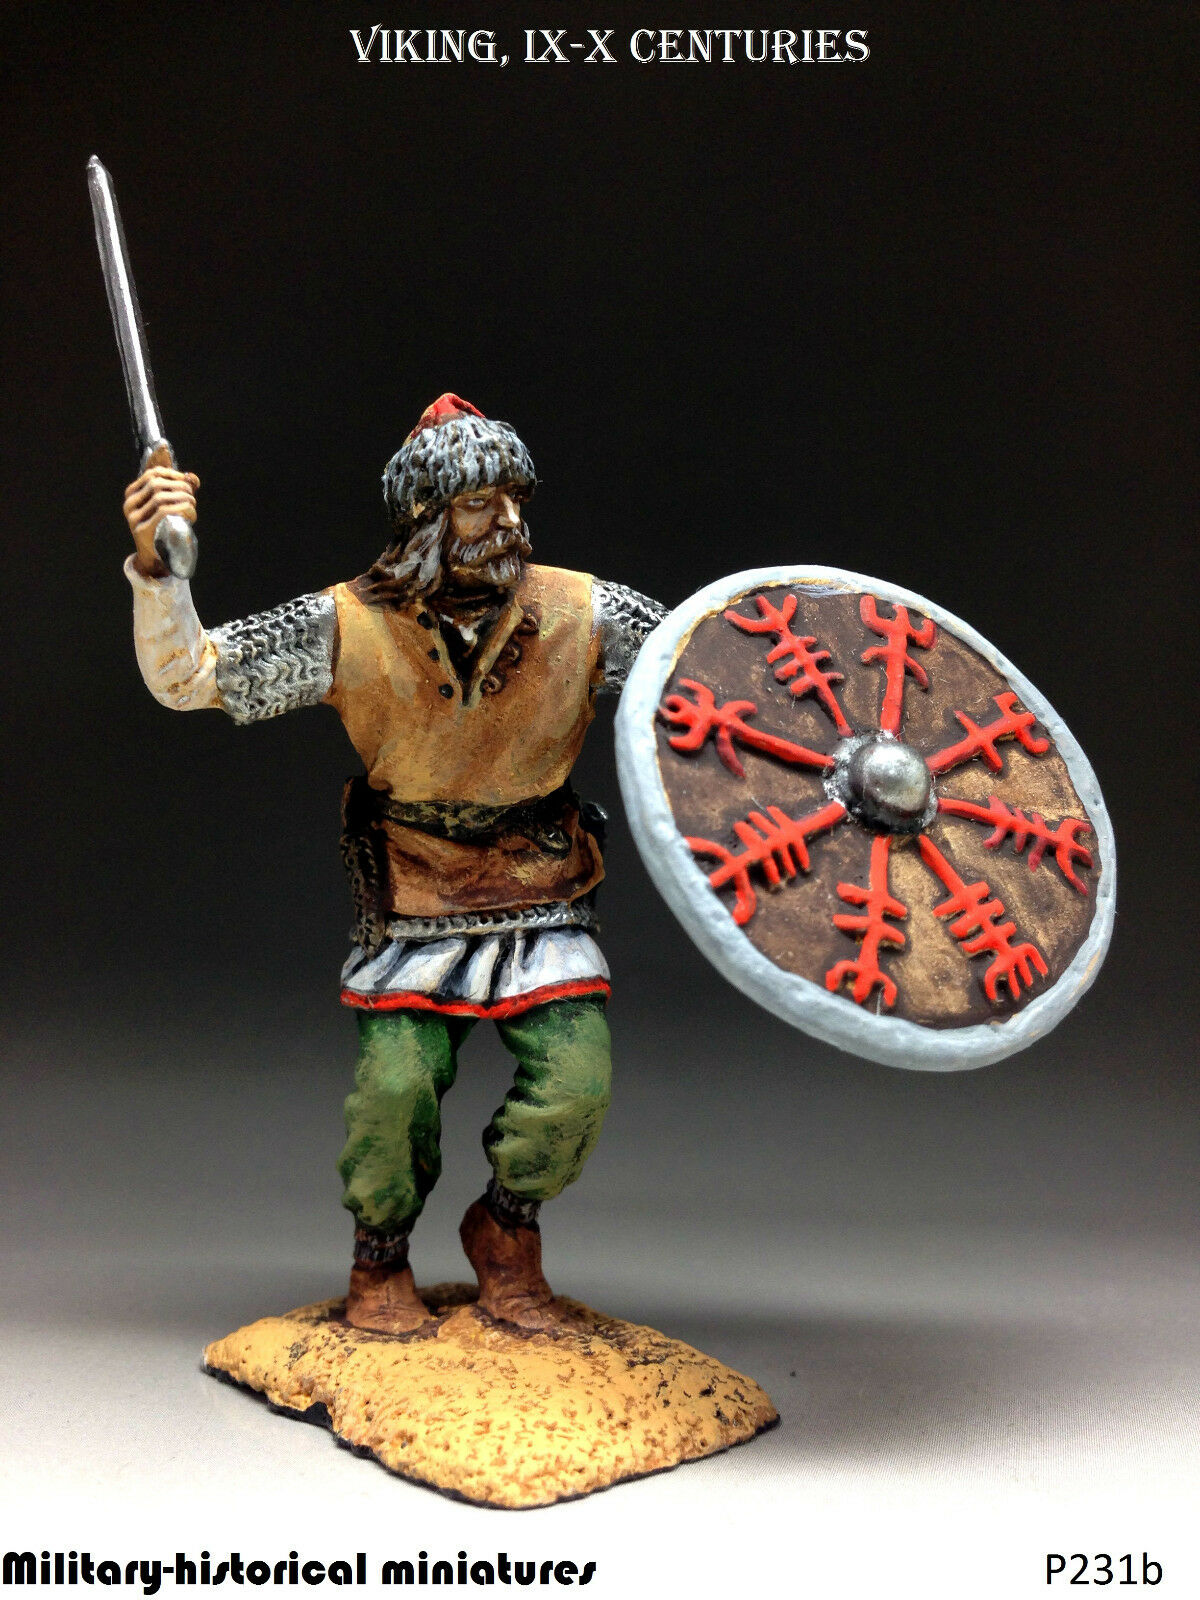 Viking Tin toy soldier 54 mm, figurine, metal sculpture HAND PAINTED